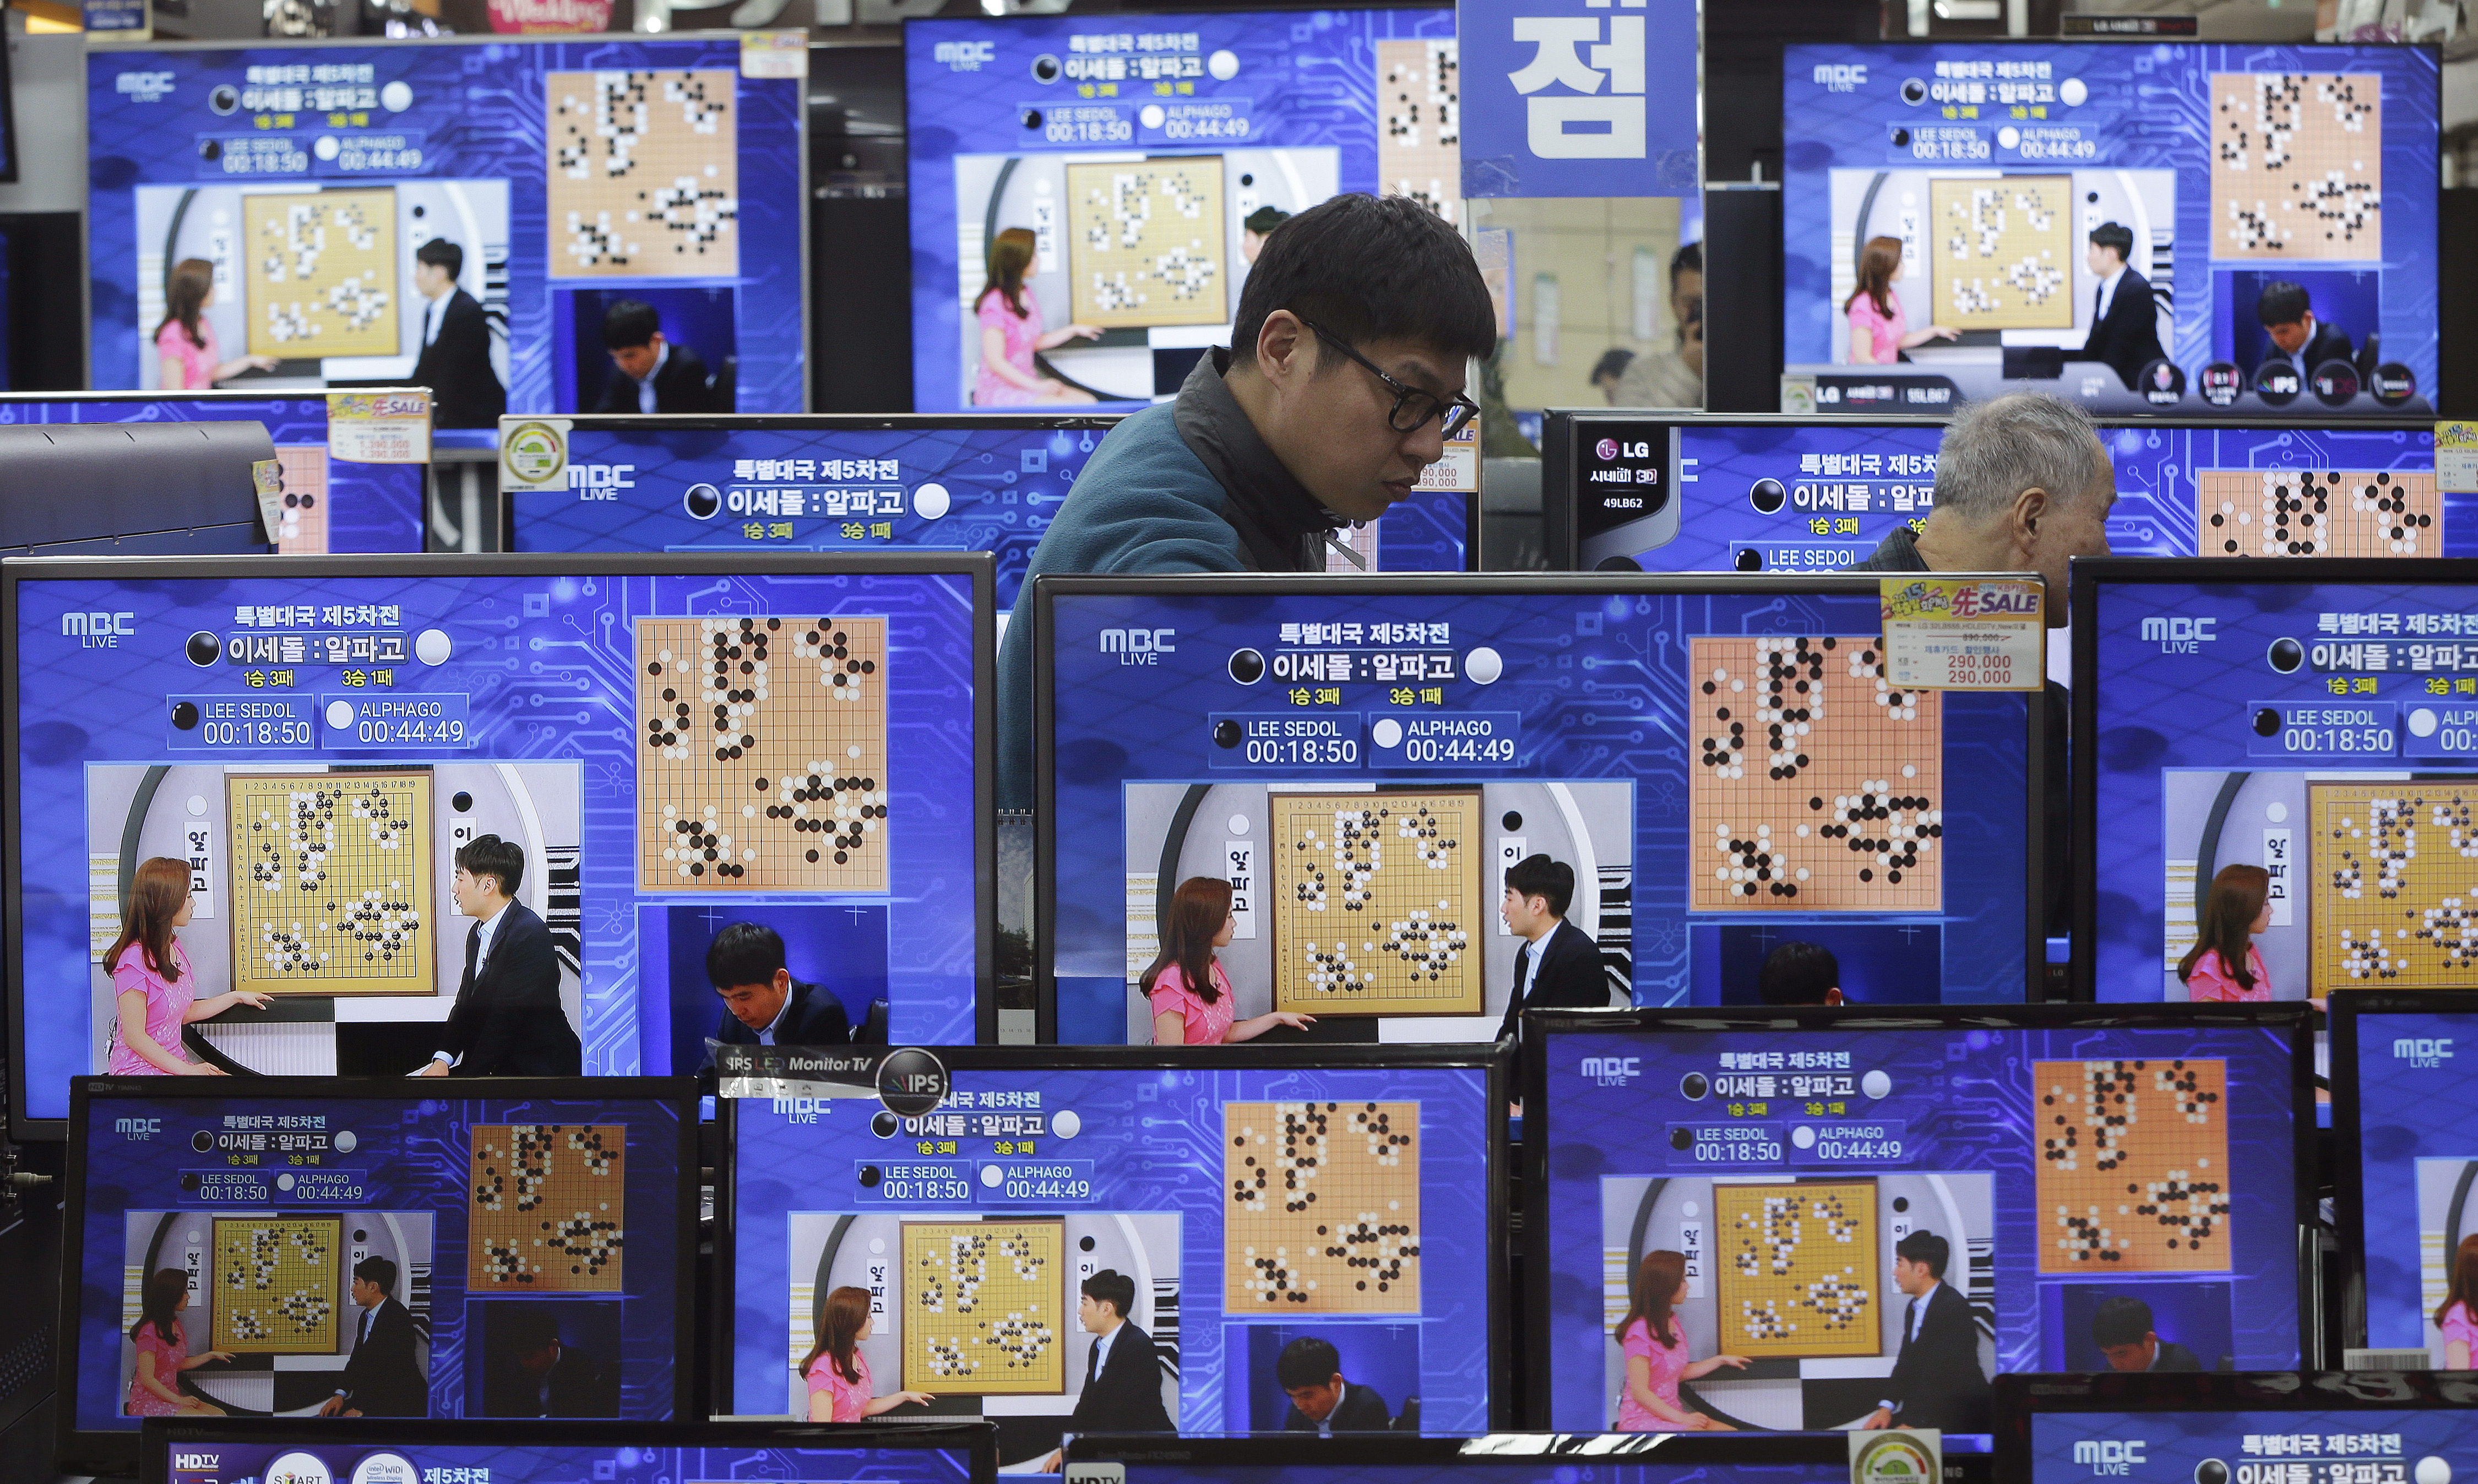 TV screens show the live broadcast of the Google DeepMind Challenge Match between Google's artificial intelligence program, AlphaGo, and South Korean professional Go player Lee Sedol, at the Yongsan Electronic store in Seoul, South Korea, Tuesday, March 15, 2016. Google's Go-playing computer program again defeated its human opponent in a final match on Tuesday sealing its 4:1 victory.